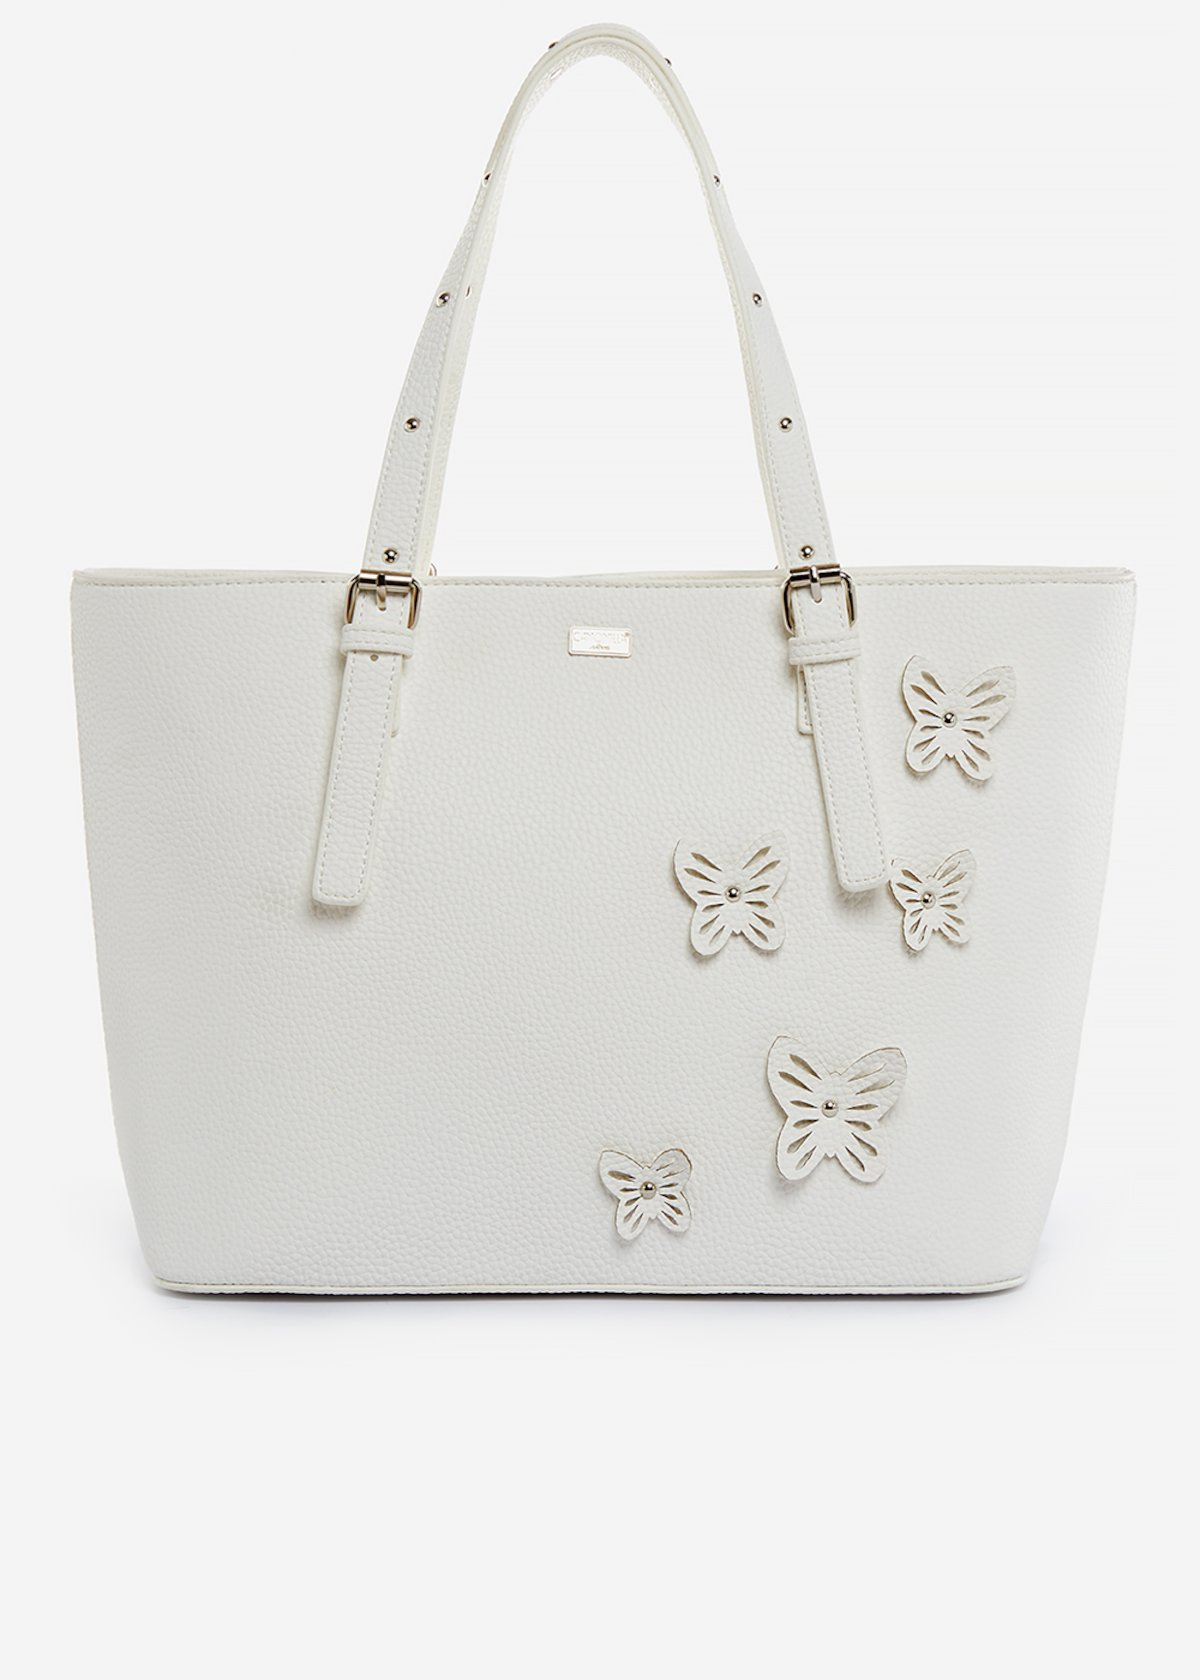 Shopping bag Brenda in ecopelle con butterfly details - White